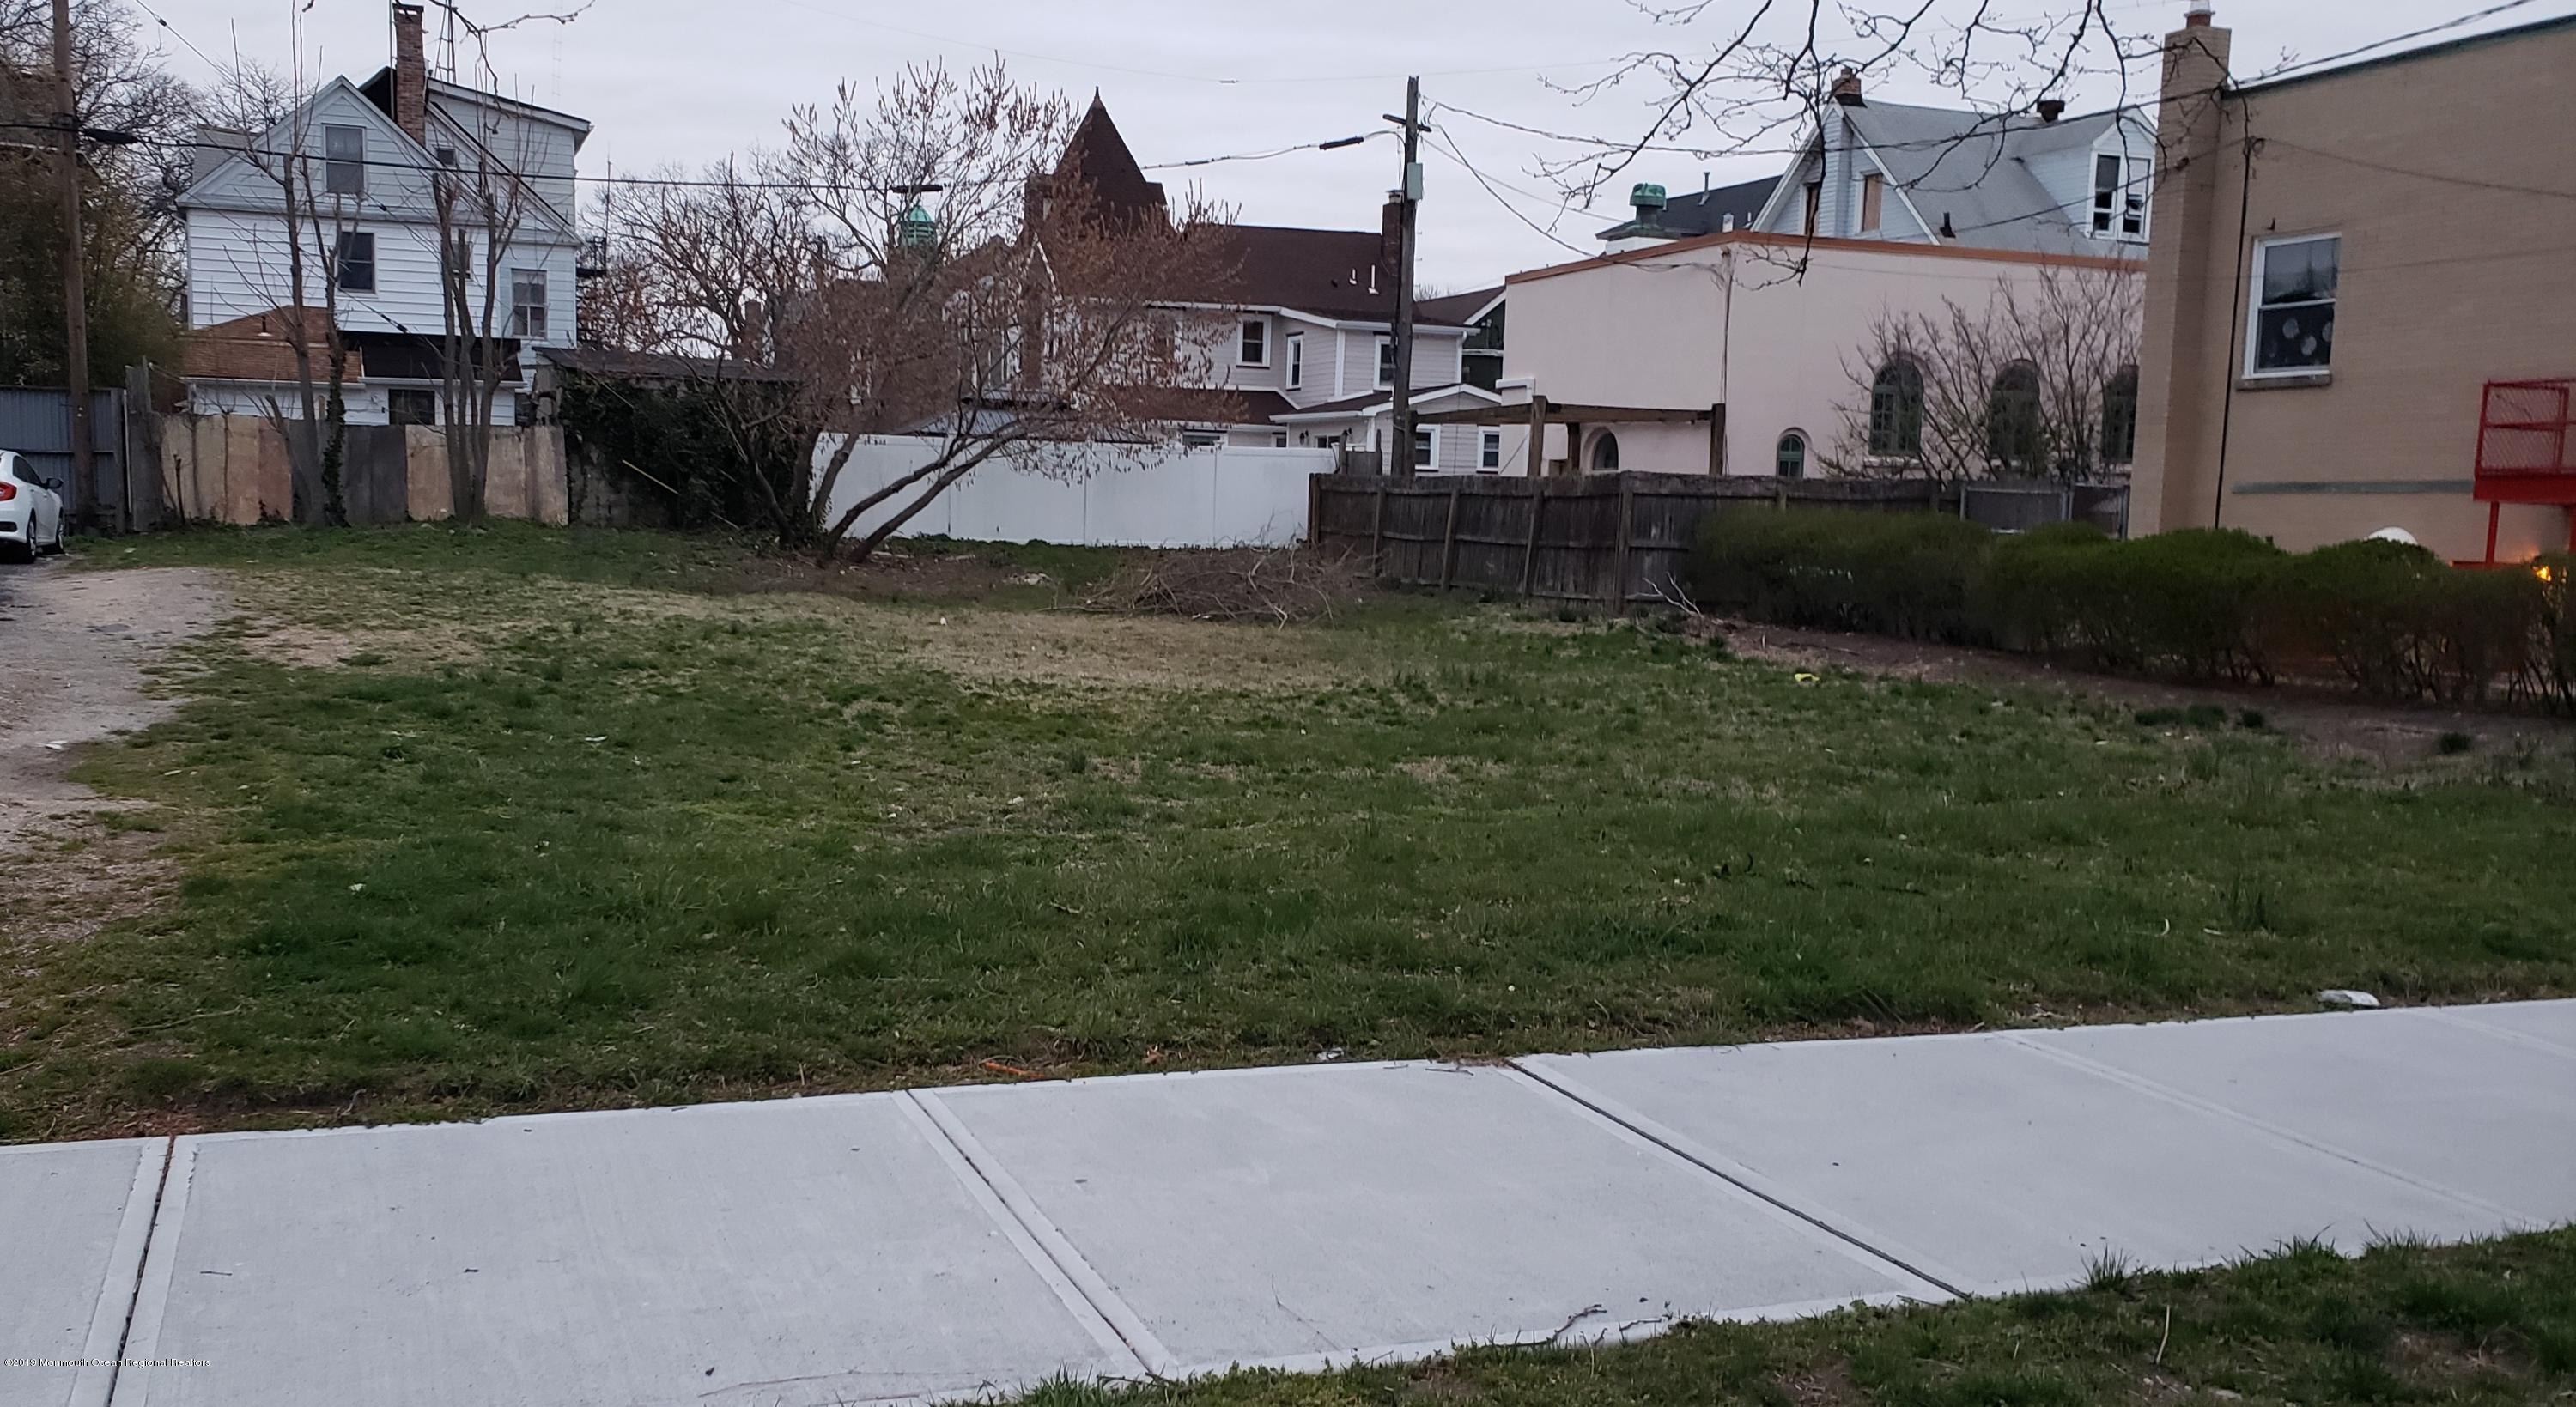 A great build-able lot 66 X 100, one lot in from Grand Ave. Walking distance to the downtown and to the beach, but yet on quiet street. Build your dream home in the Asbury Park in the Coolest town along all of New Jersey  Coast!! This is one of the only lots left to build on the east side!! It will not last long!! Take a ride and check out the location!